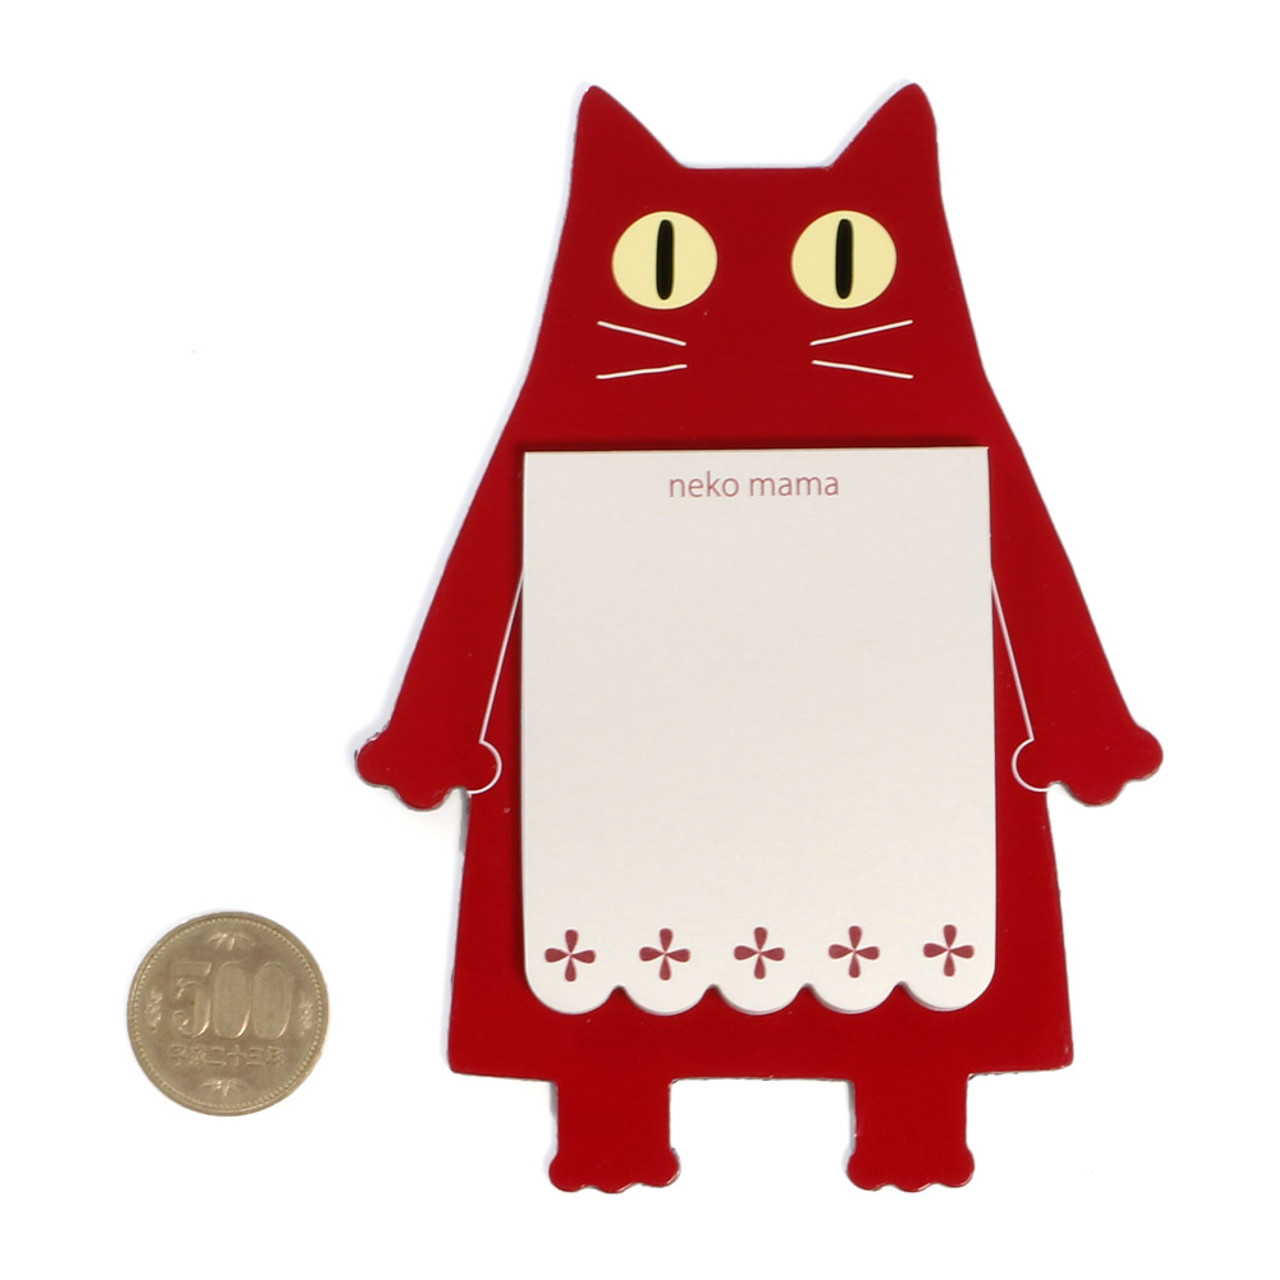 Noafamily Nekomama Red Cat Magnet Memo Pad 48 sheets ( Proportion )